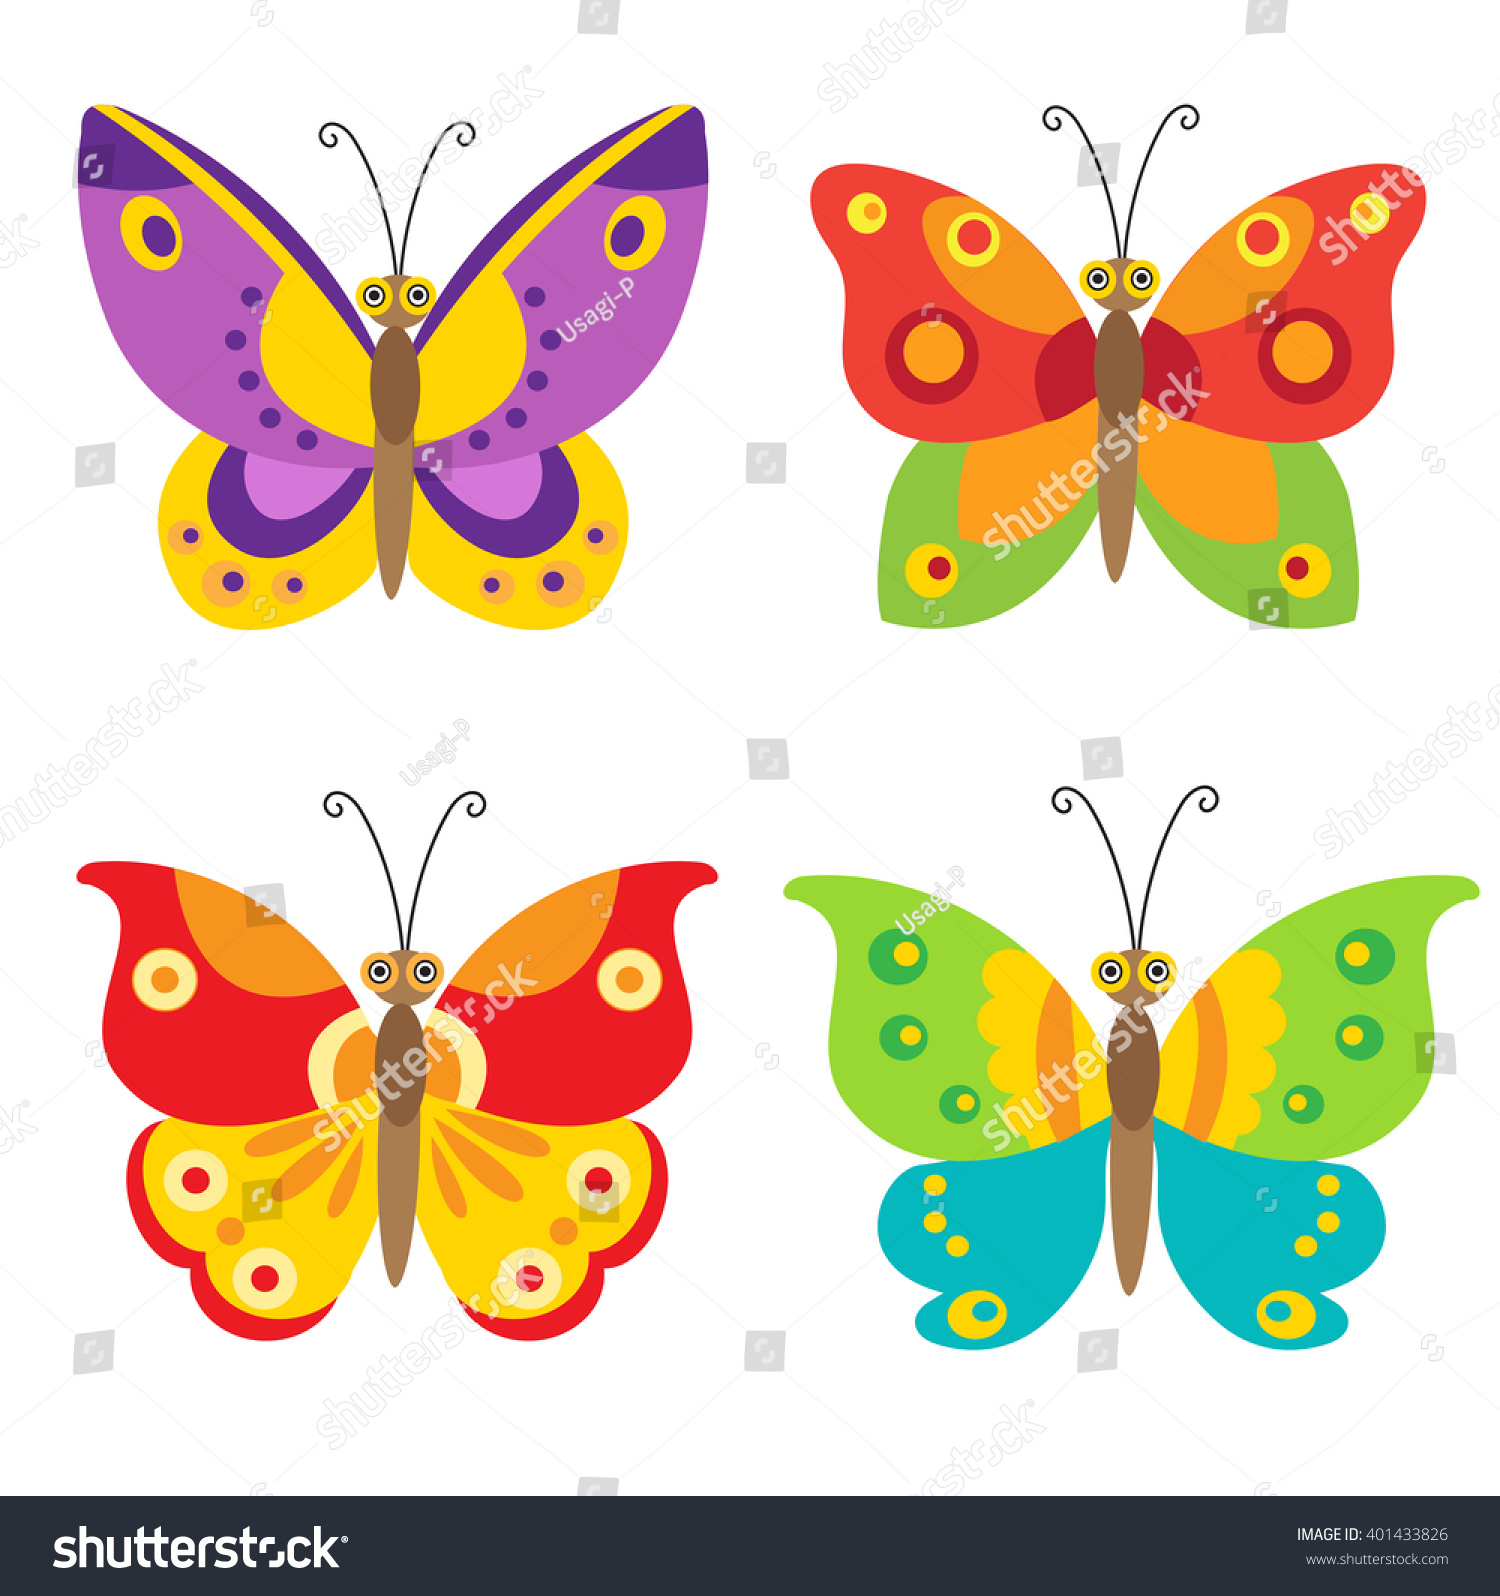 Uncategorized Images Of Butterflies For Children simple flying butterfly vector set icons stock 401433826 colorful cartoon for children